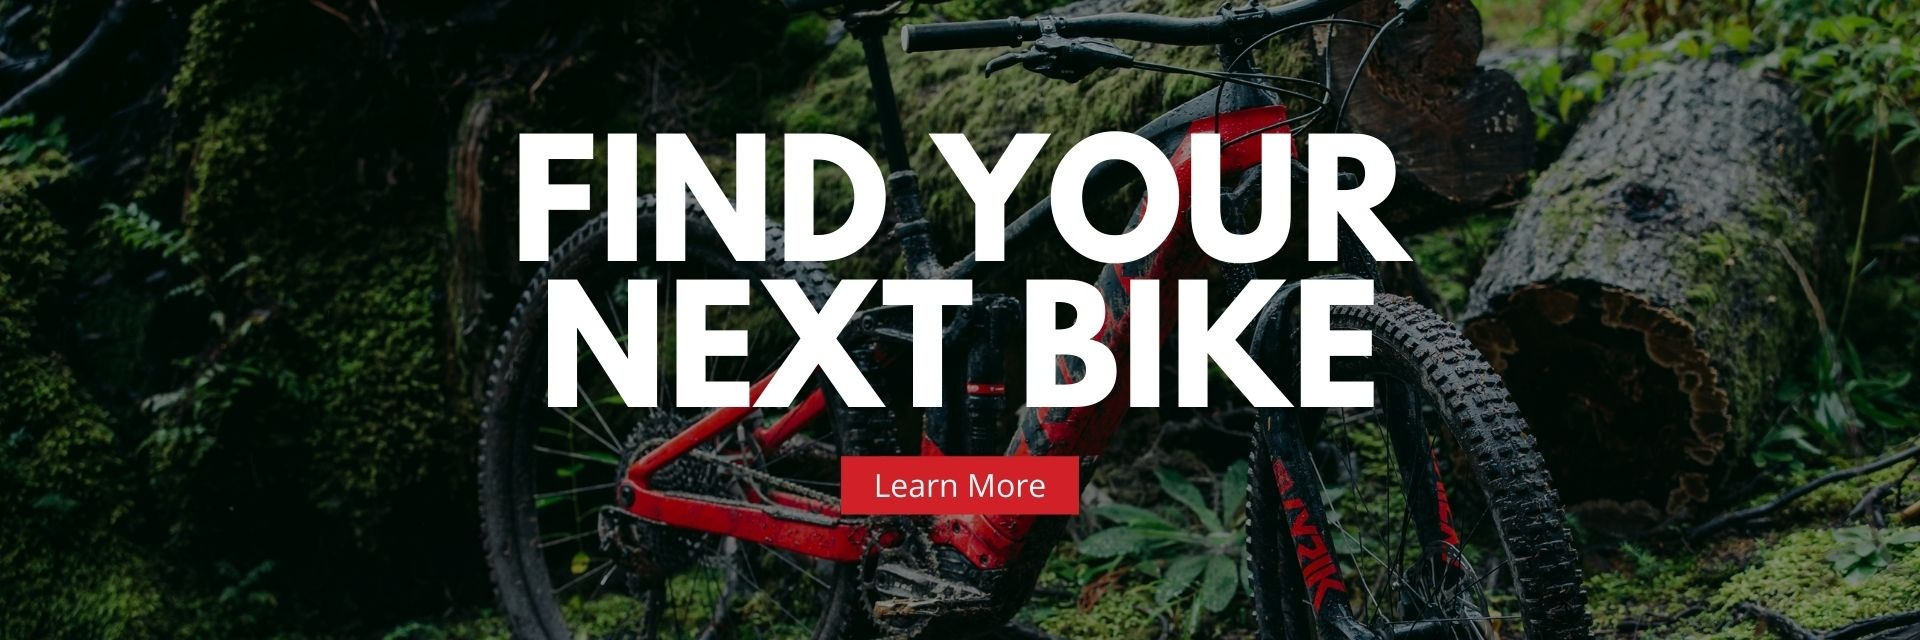 Find Your Next Bike